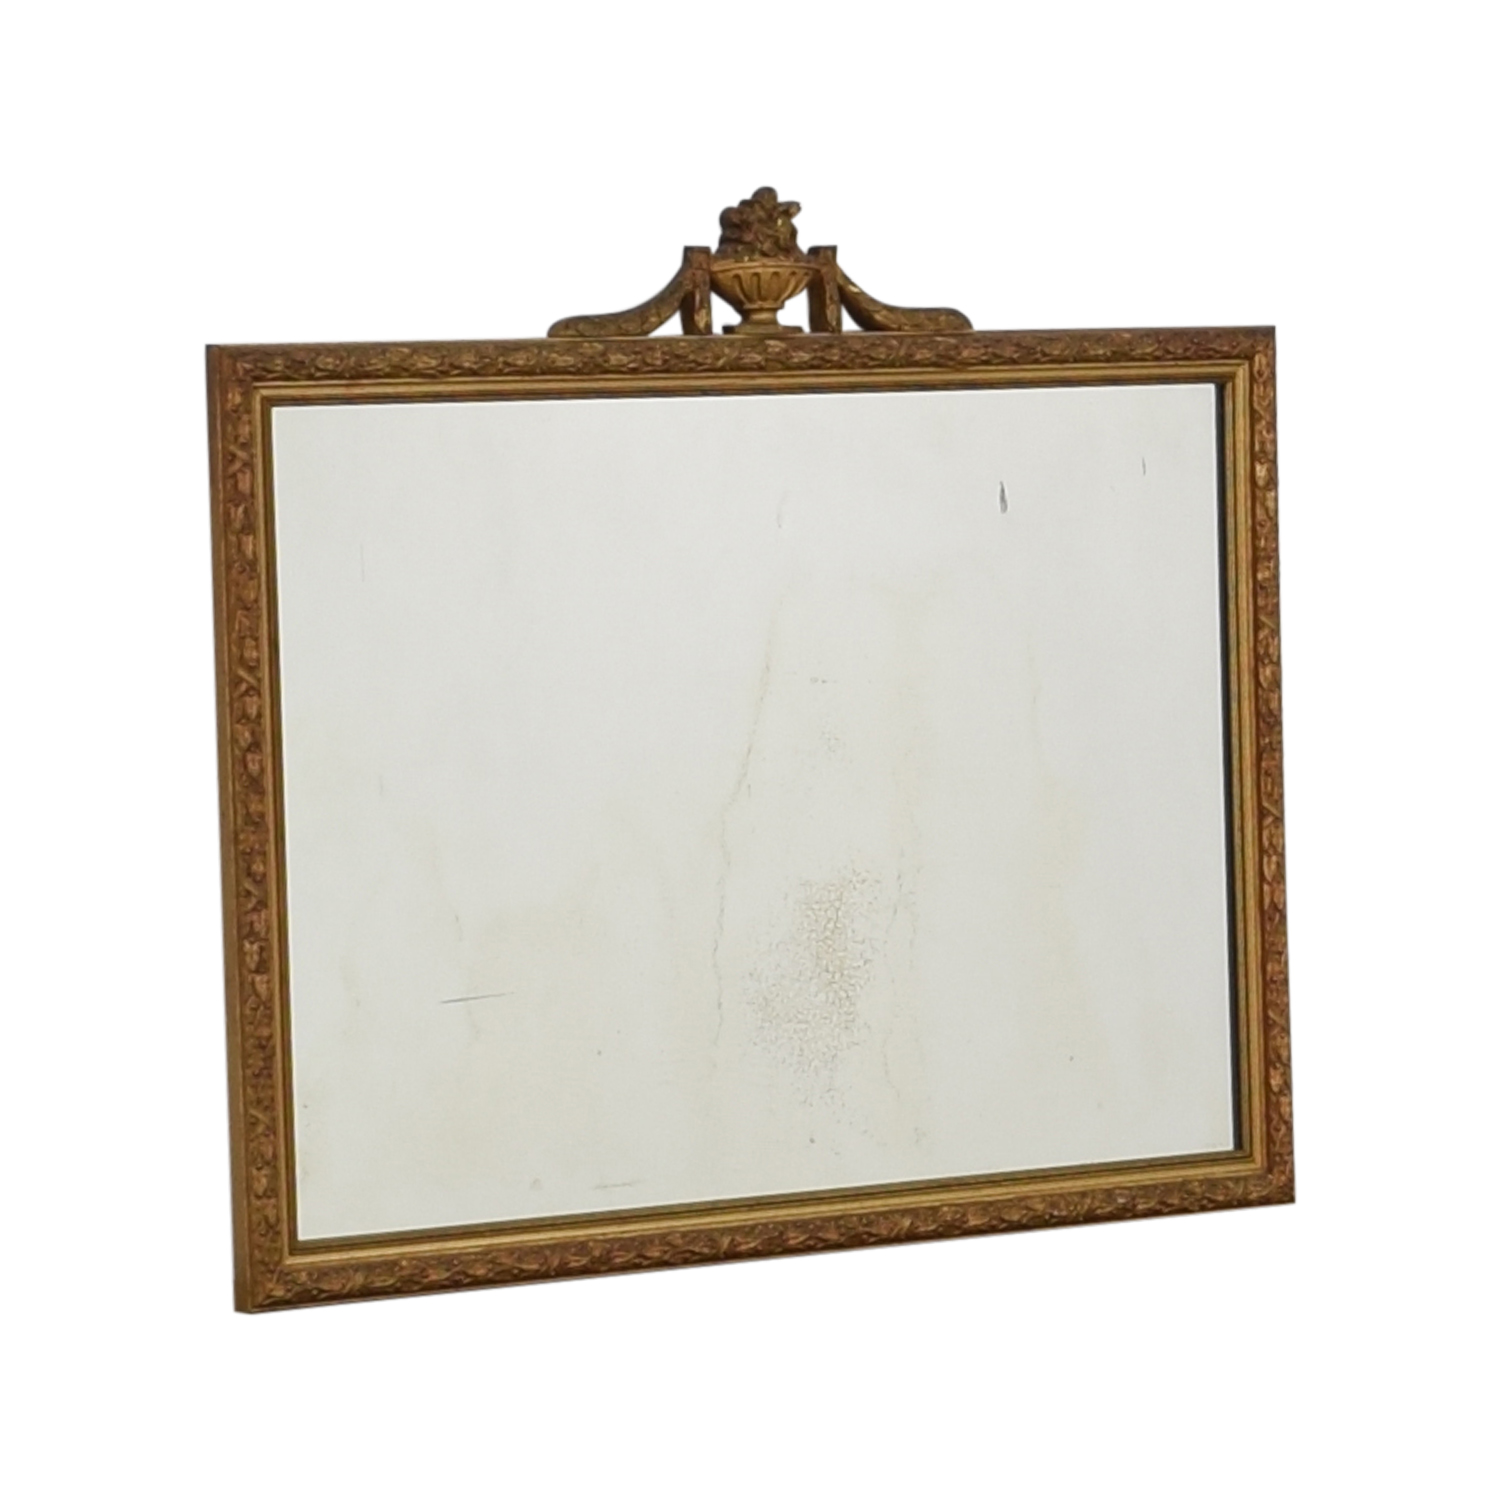 buy White Seid Products Vintage Framed Mirror